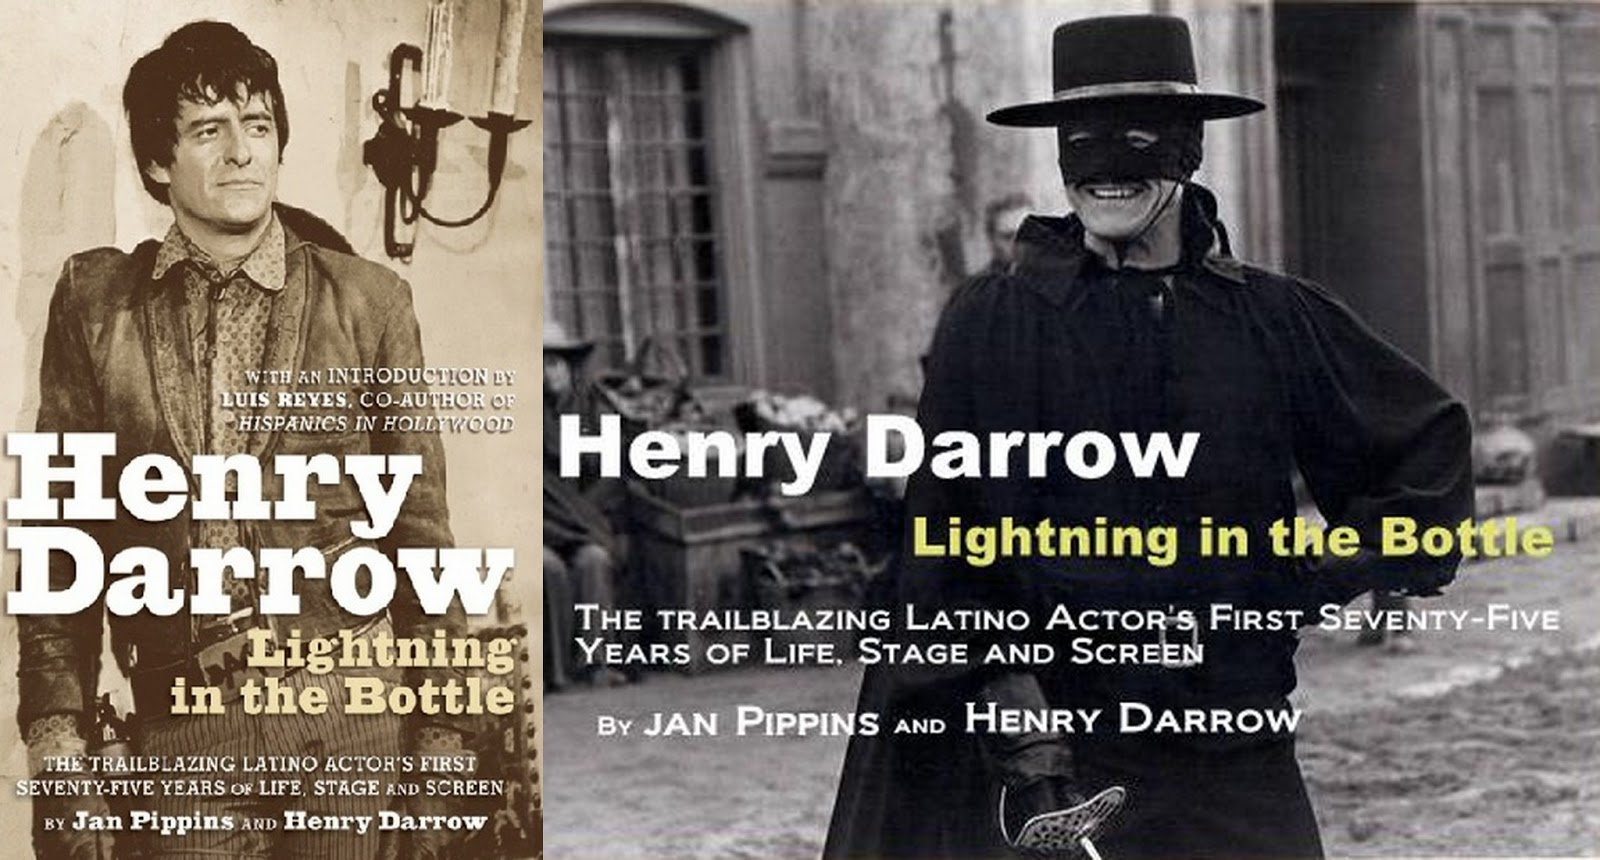 henry darrow imdbhenry darrow actor, henry darrow age, henry darrow imdb, henry darrow 2016, henry darrow net worth, henry darrow wife, henry darrow movies, henry darrow the high chaparral, henry darrow height, henry darrow pictures, henry darrow interview, henry darrow wilmington nc, henry darrow family, henry darrow bonanza, henry darrow married, henry darrow movies and tv shows, henry darrow gunsmoke, henry darrow twitter, henry darrow now, henry darrow photos